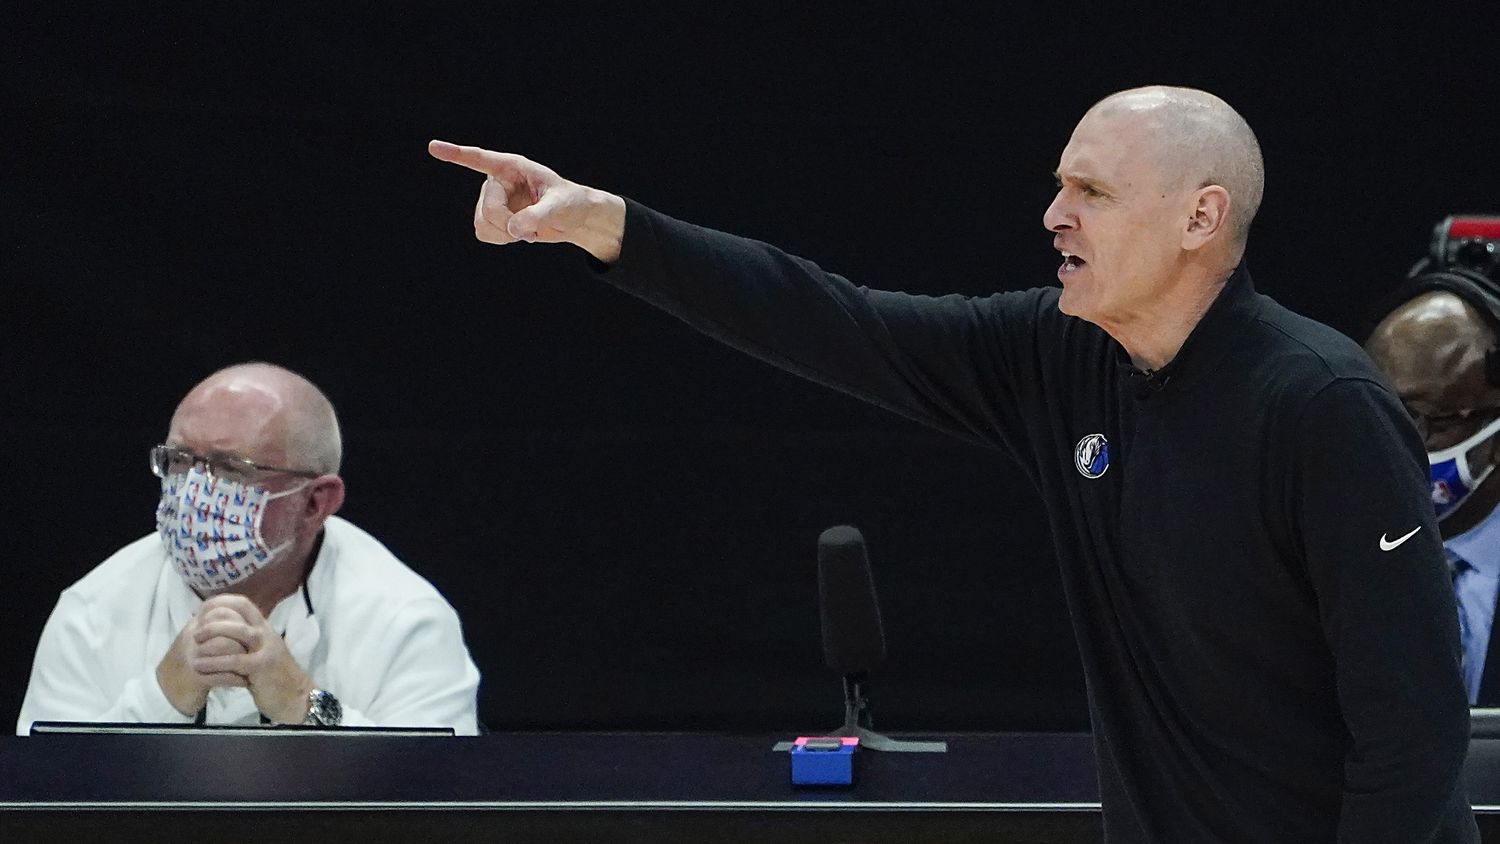 Dallas Mavericks head coach Rick Carlisle directs his team during the third quarter of an NBA playoff basketball game against the LA Clippers at the Staples Center on Wednesday, June 2, 2021, in Los Angeles.